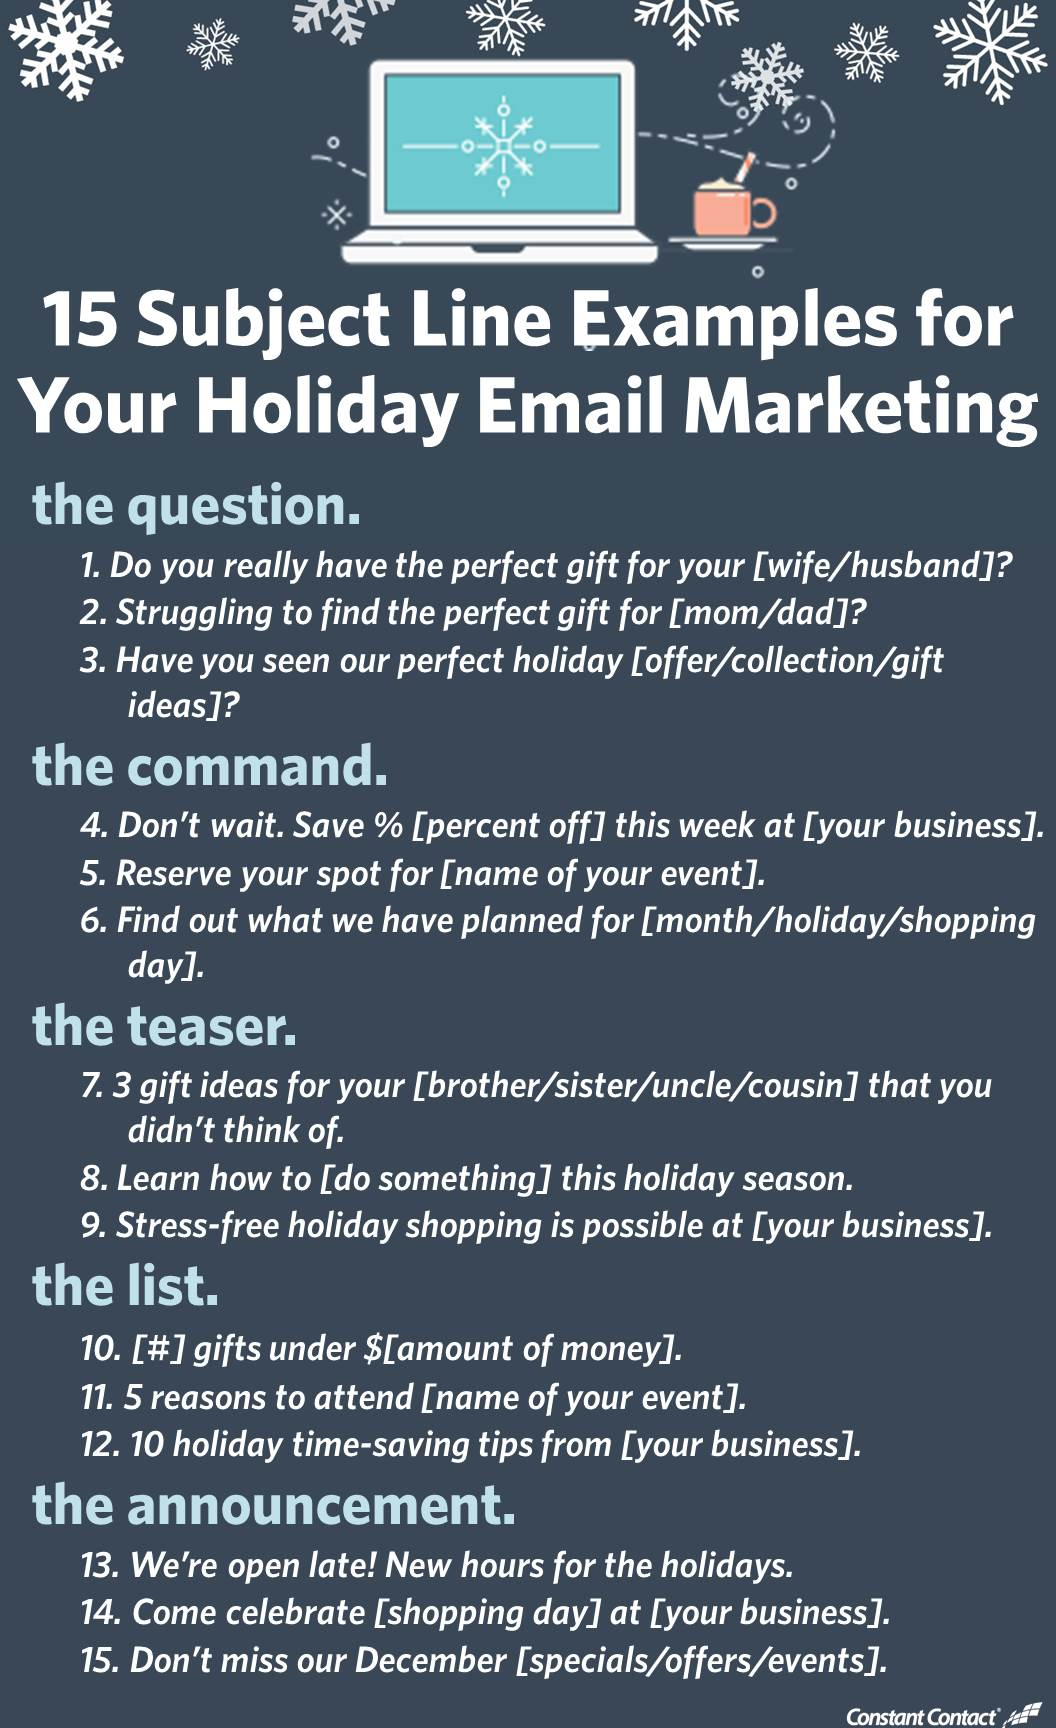 15 subject line examples for your email marketing